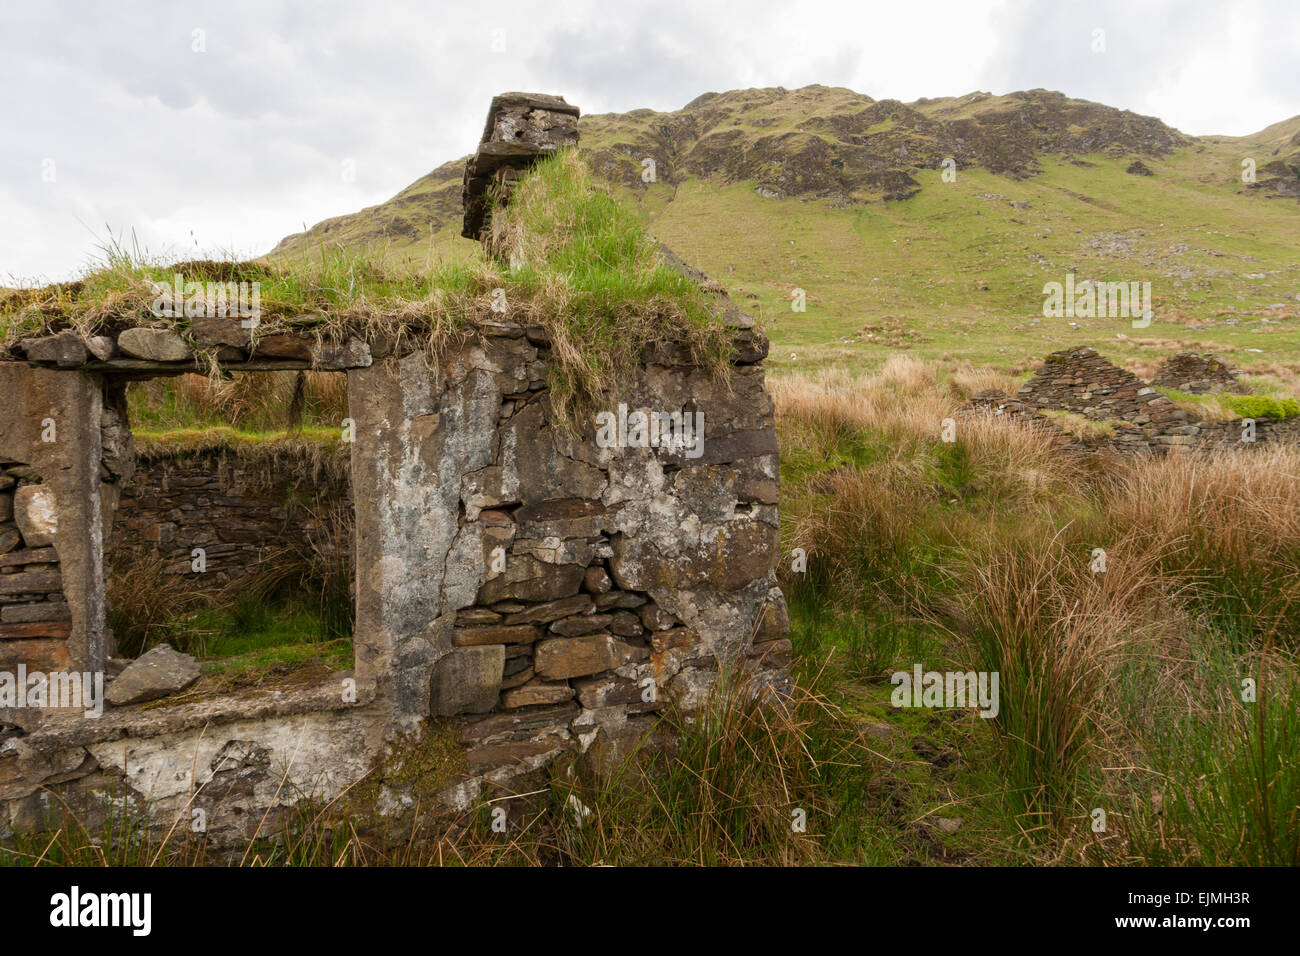 Shell of once thatched cottages in the Bluestack Mountains in Co. Donegal - Stock Image